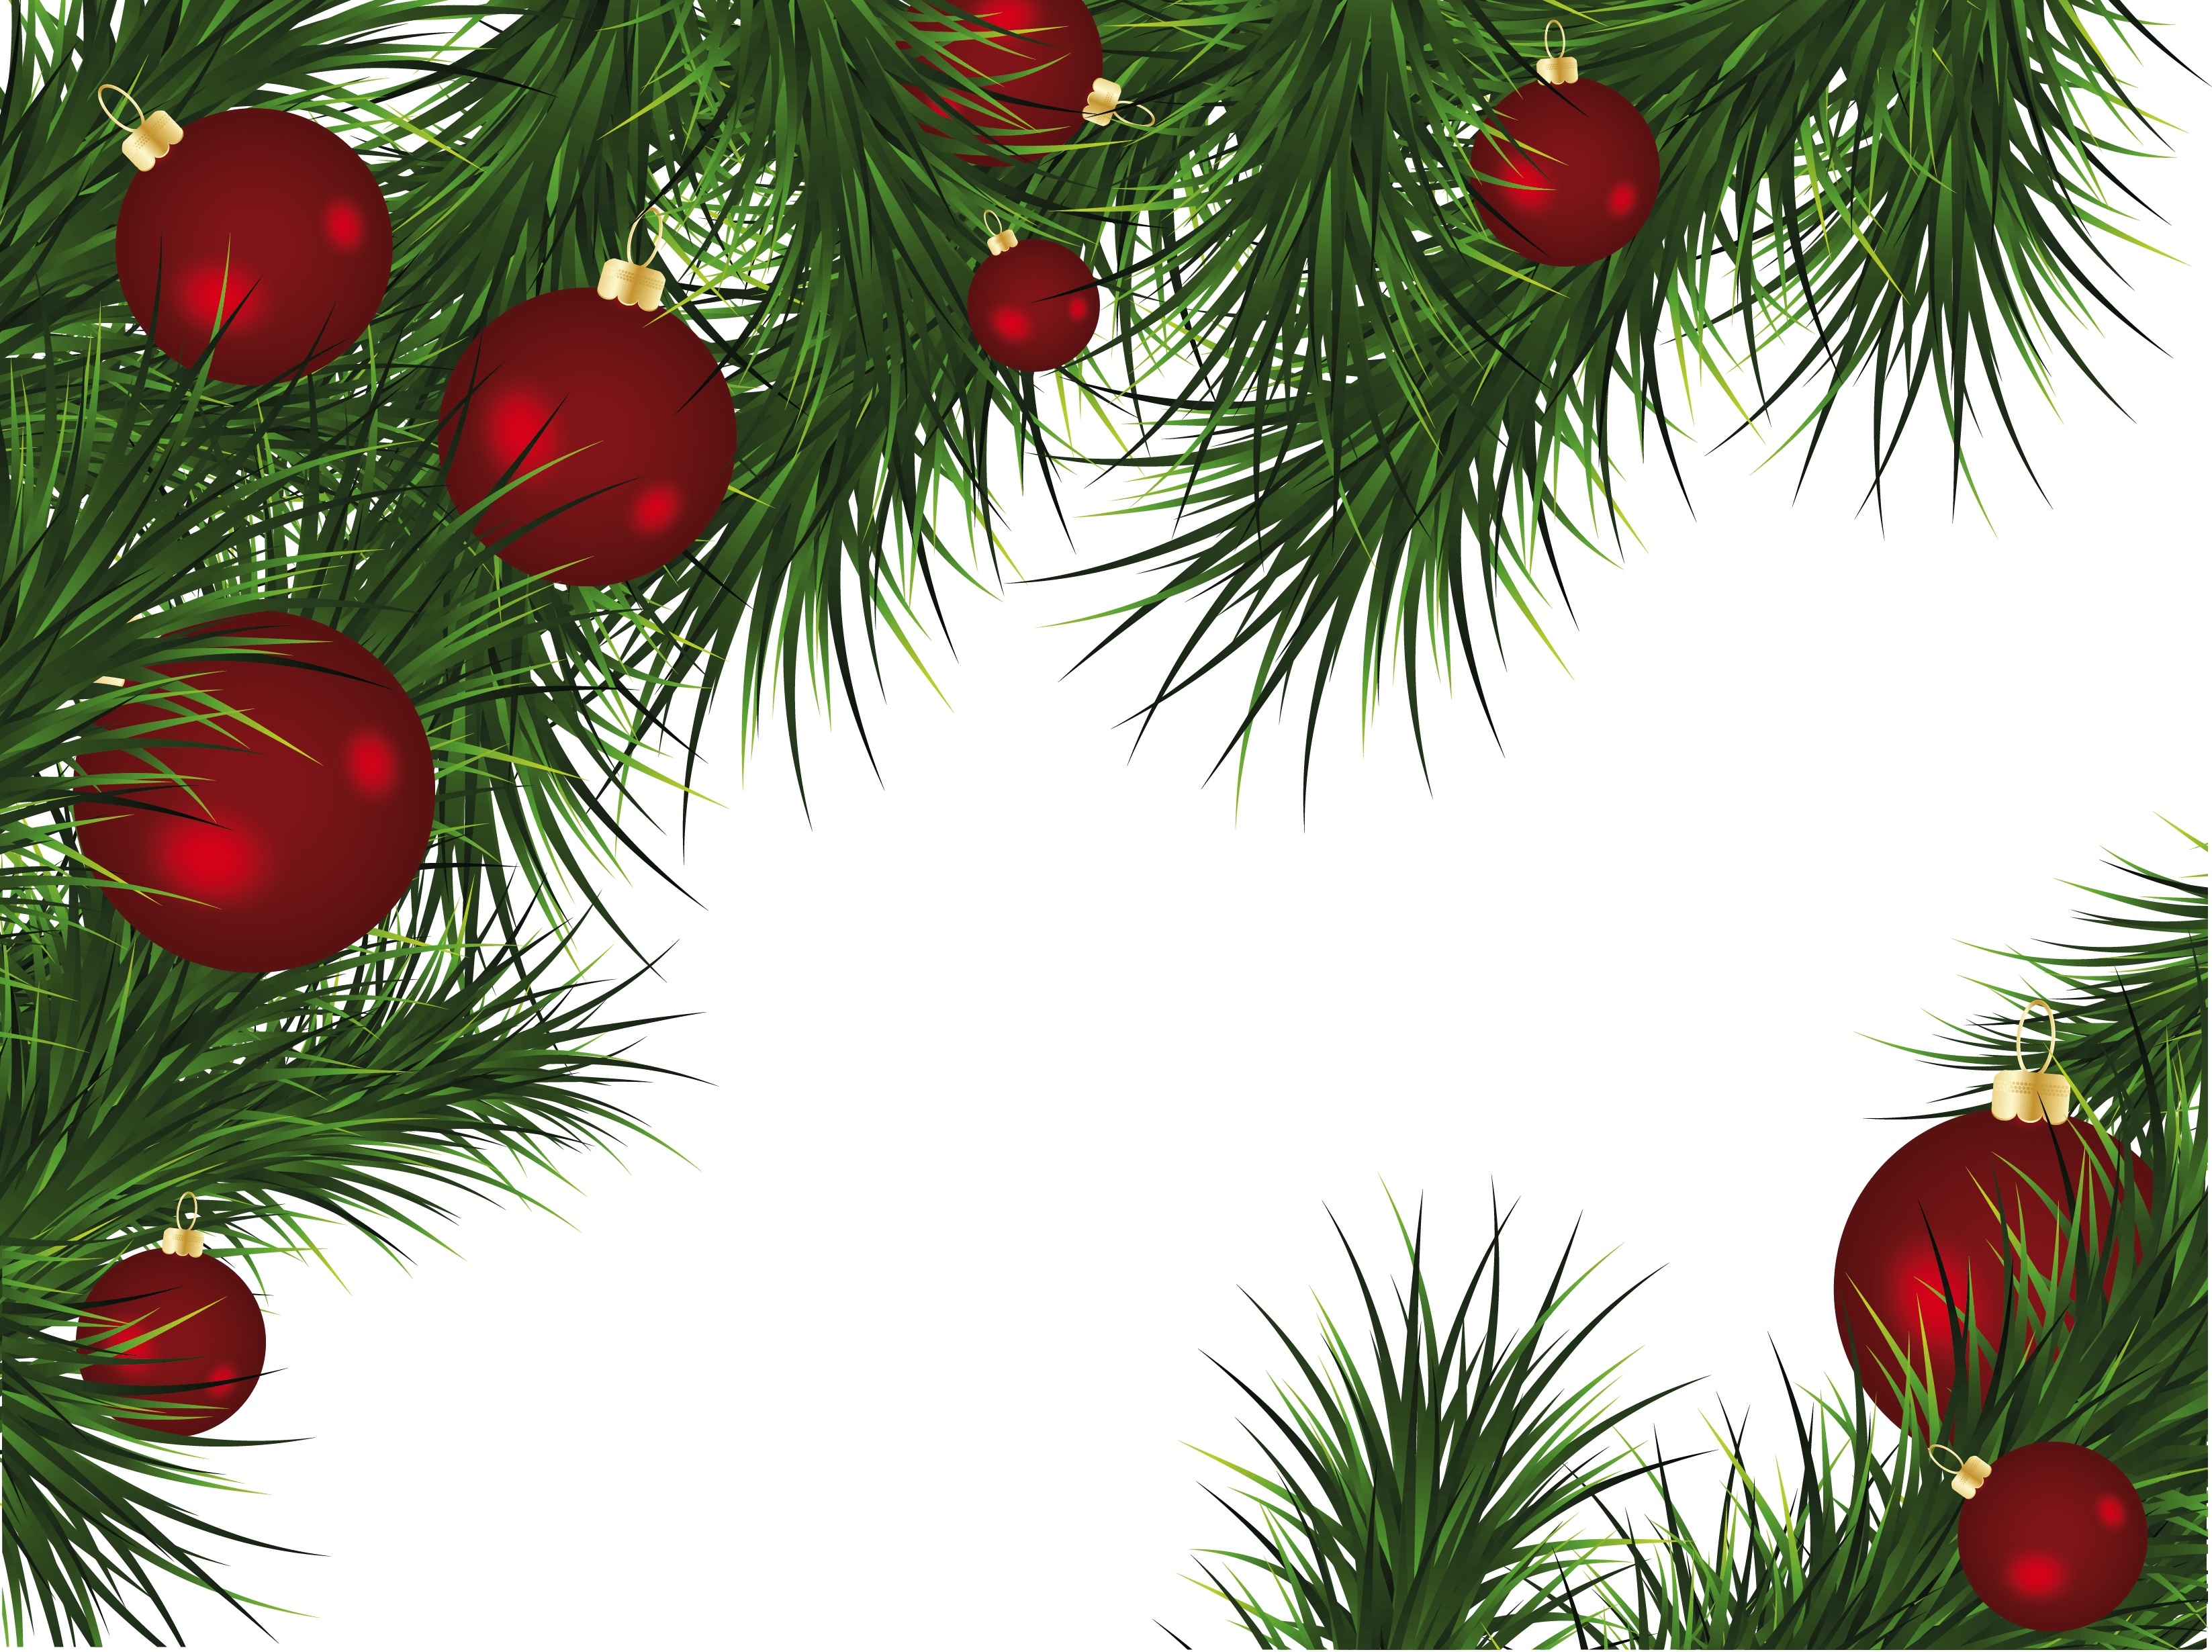 Christmas Ornament Png Transparent Christmas Ornament Png: Christmas Png Transparent